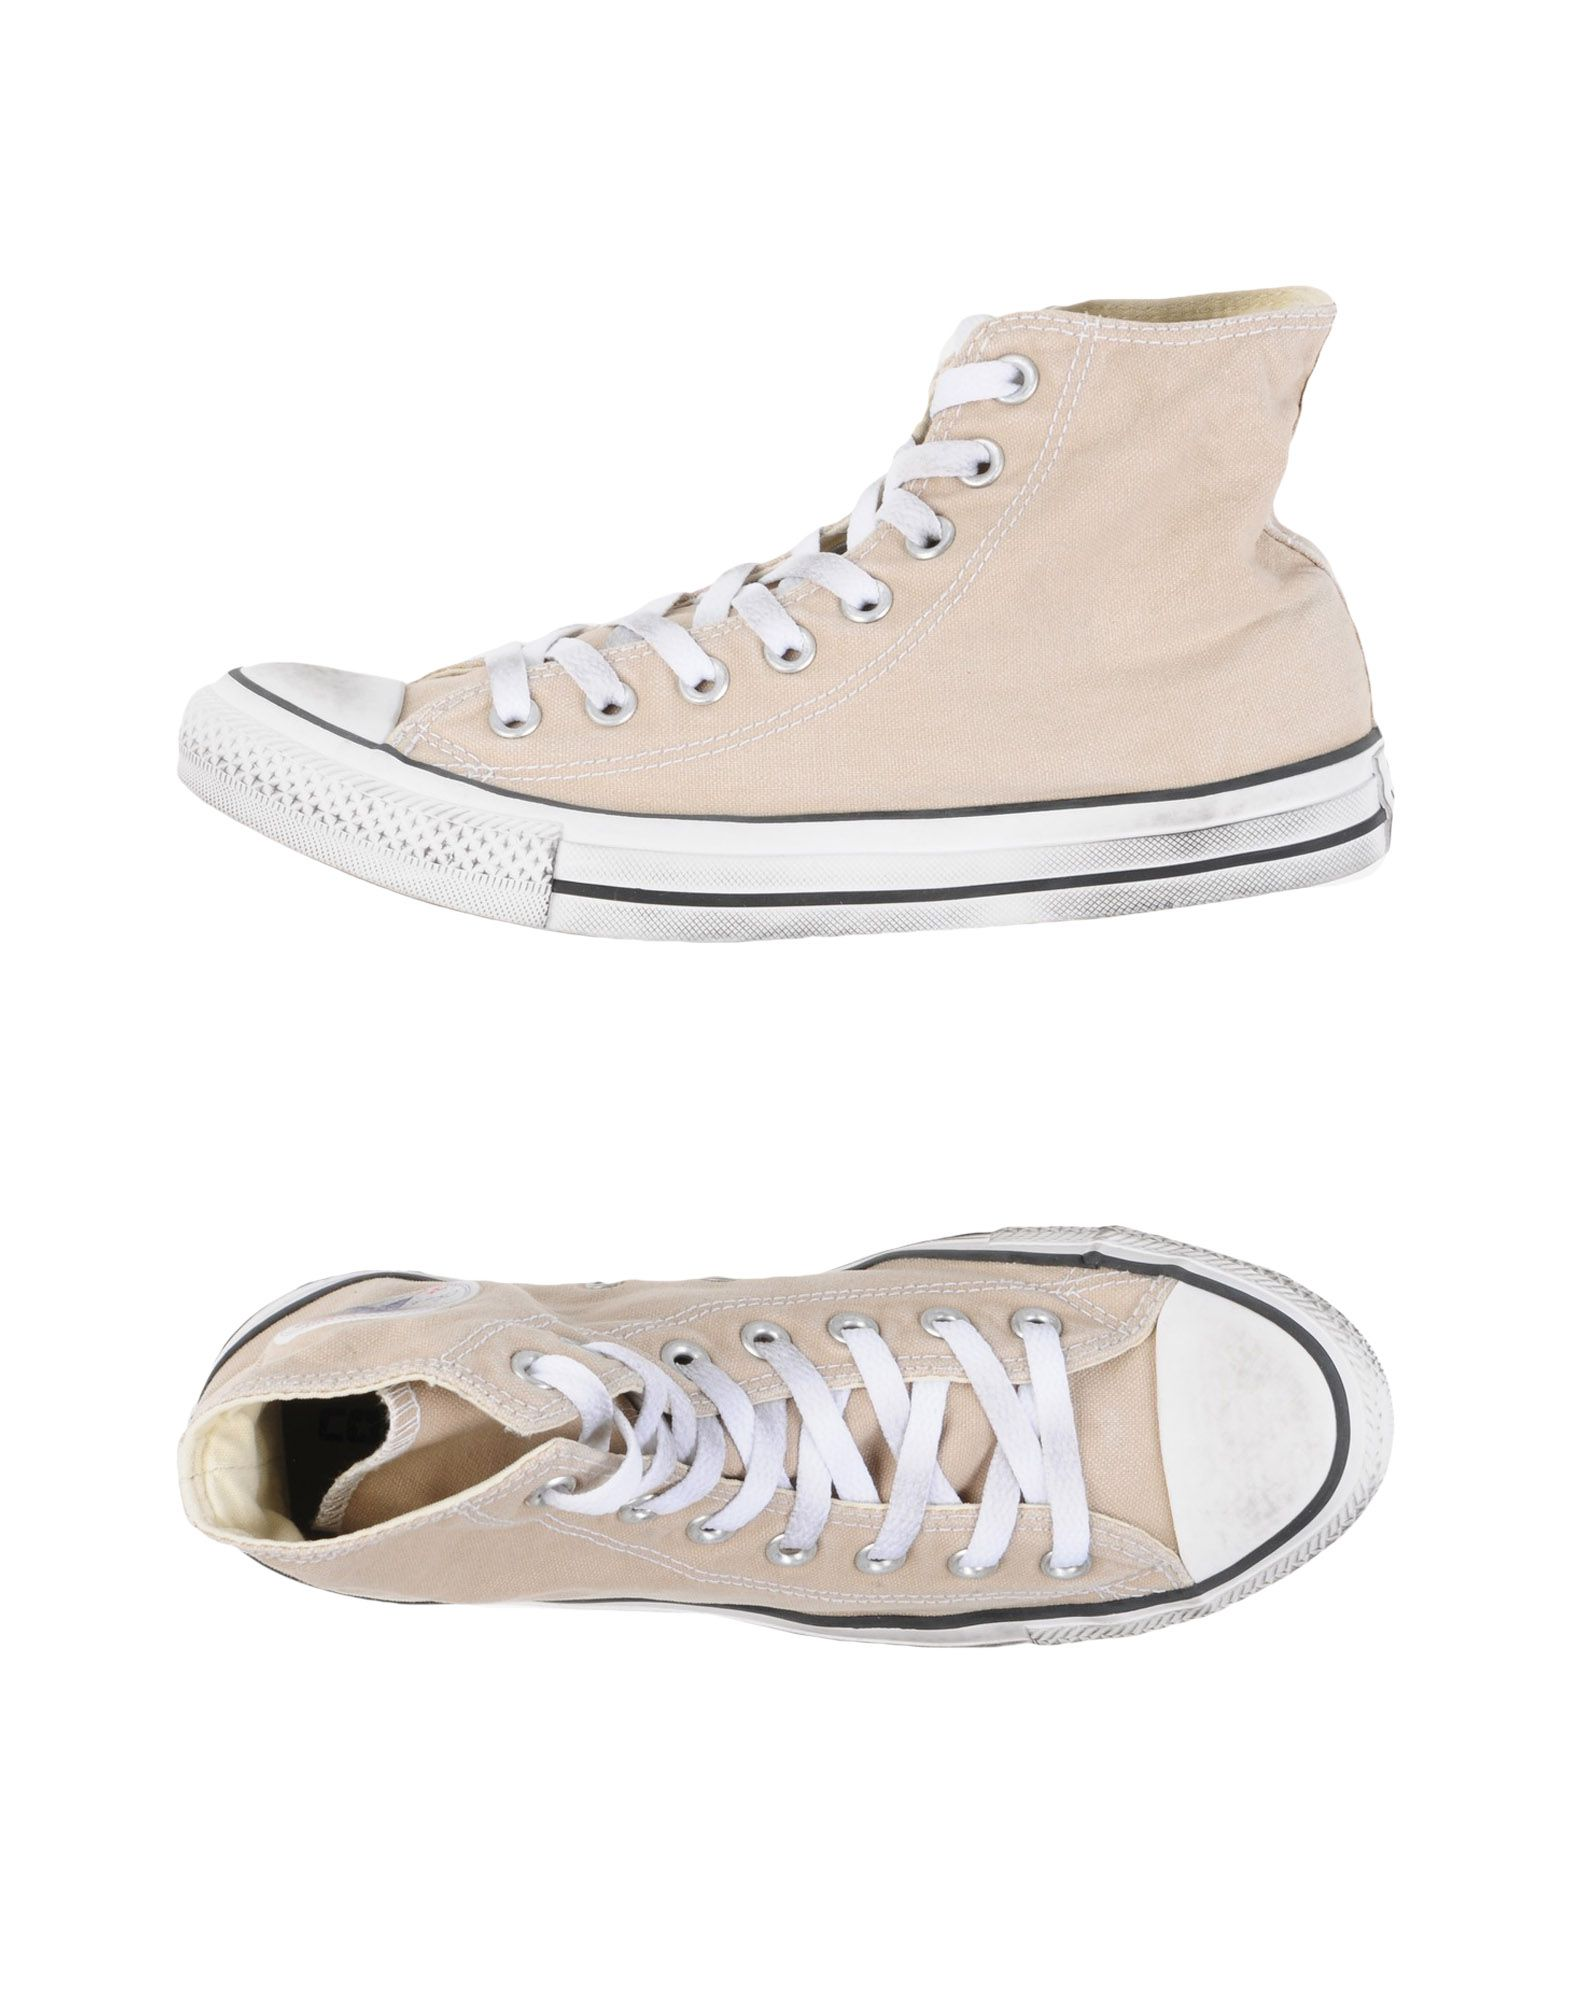 CONVERSE LIMITED EDITION Высокие кеды и кроссовки new anal dildo realistic dildo with strong suction cup fake penis long butt plug anal plug sex toys for women sex products